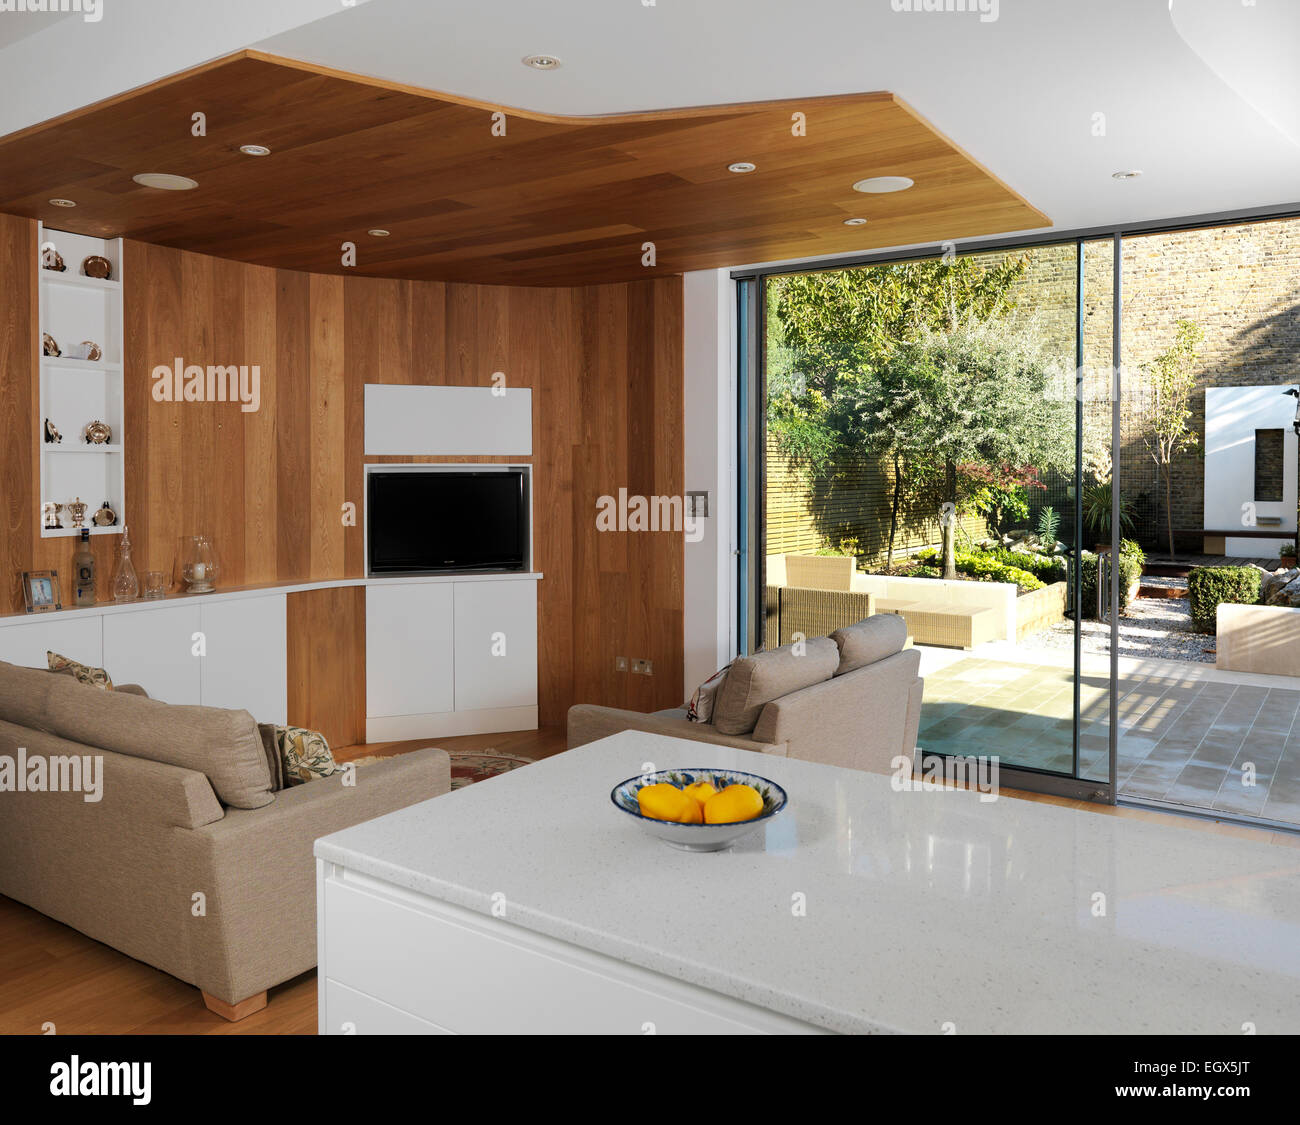 sitting area in open plan kitchen with view to garden, uk home